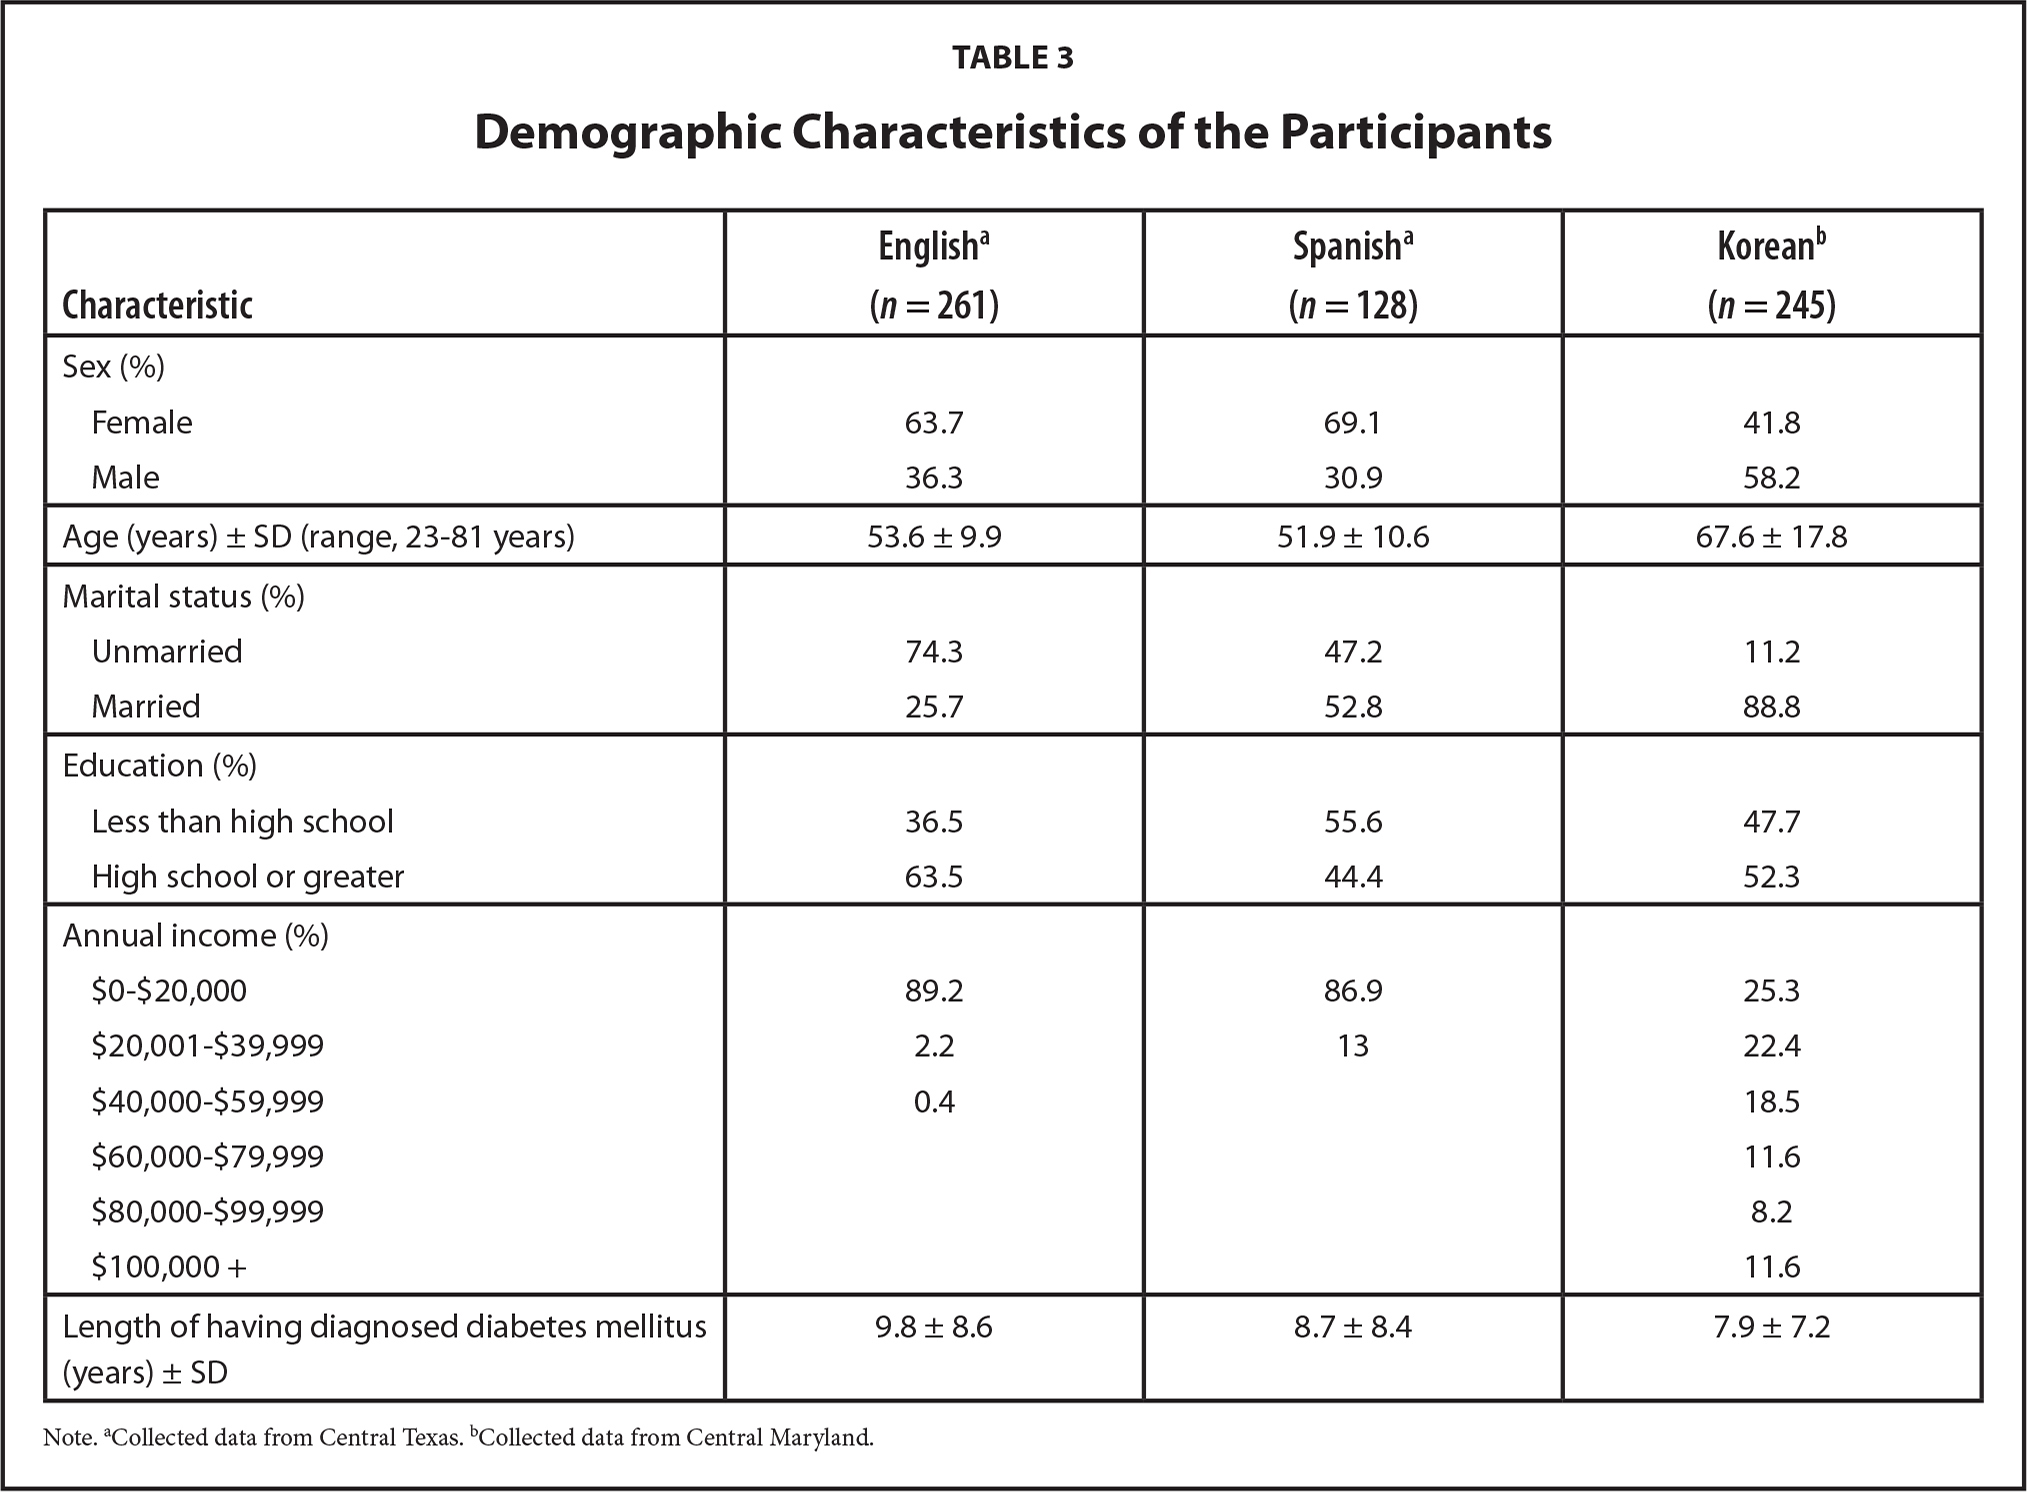 Demographic Characteristics of the Participants